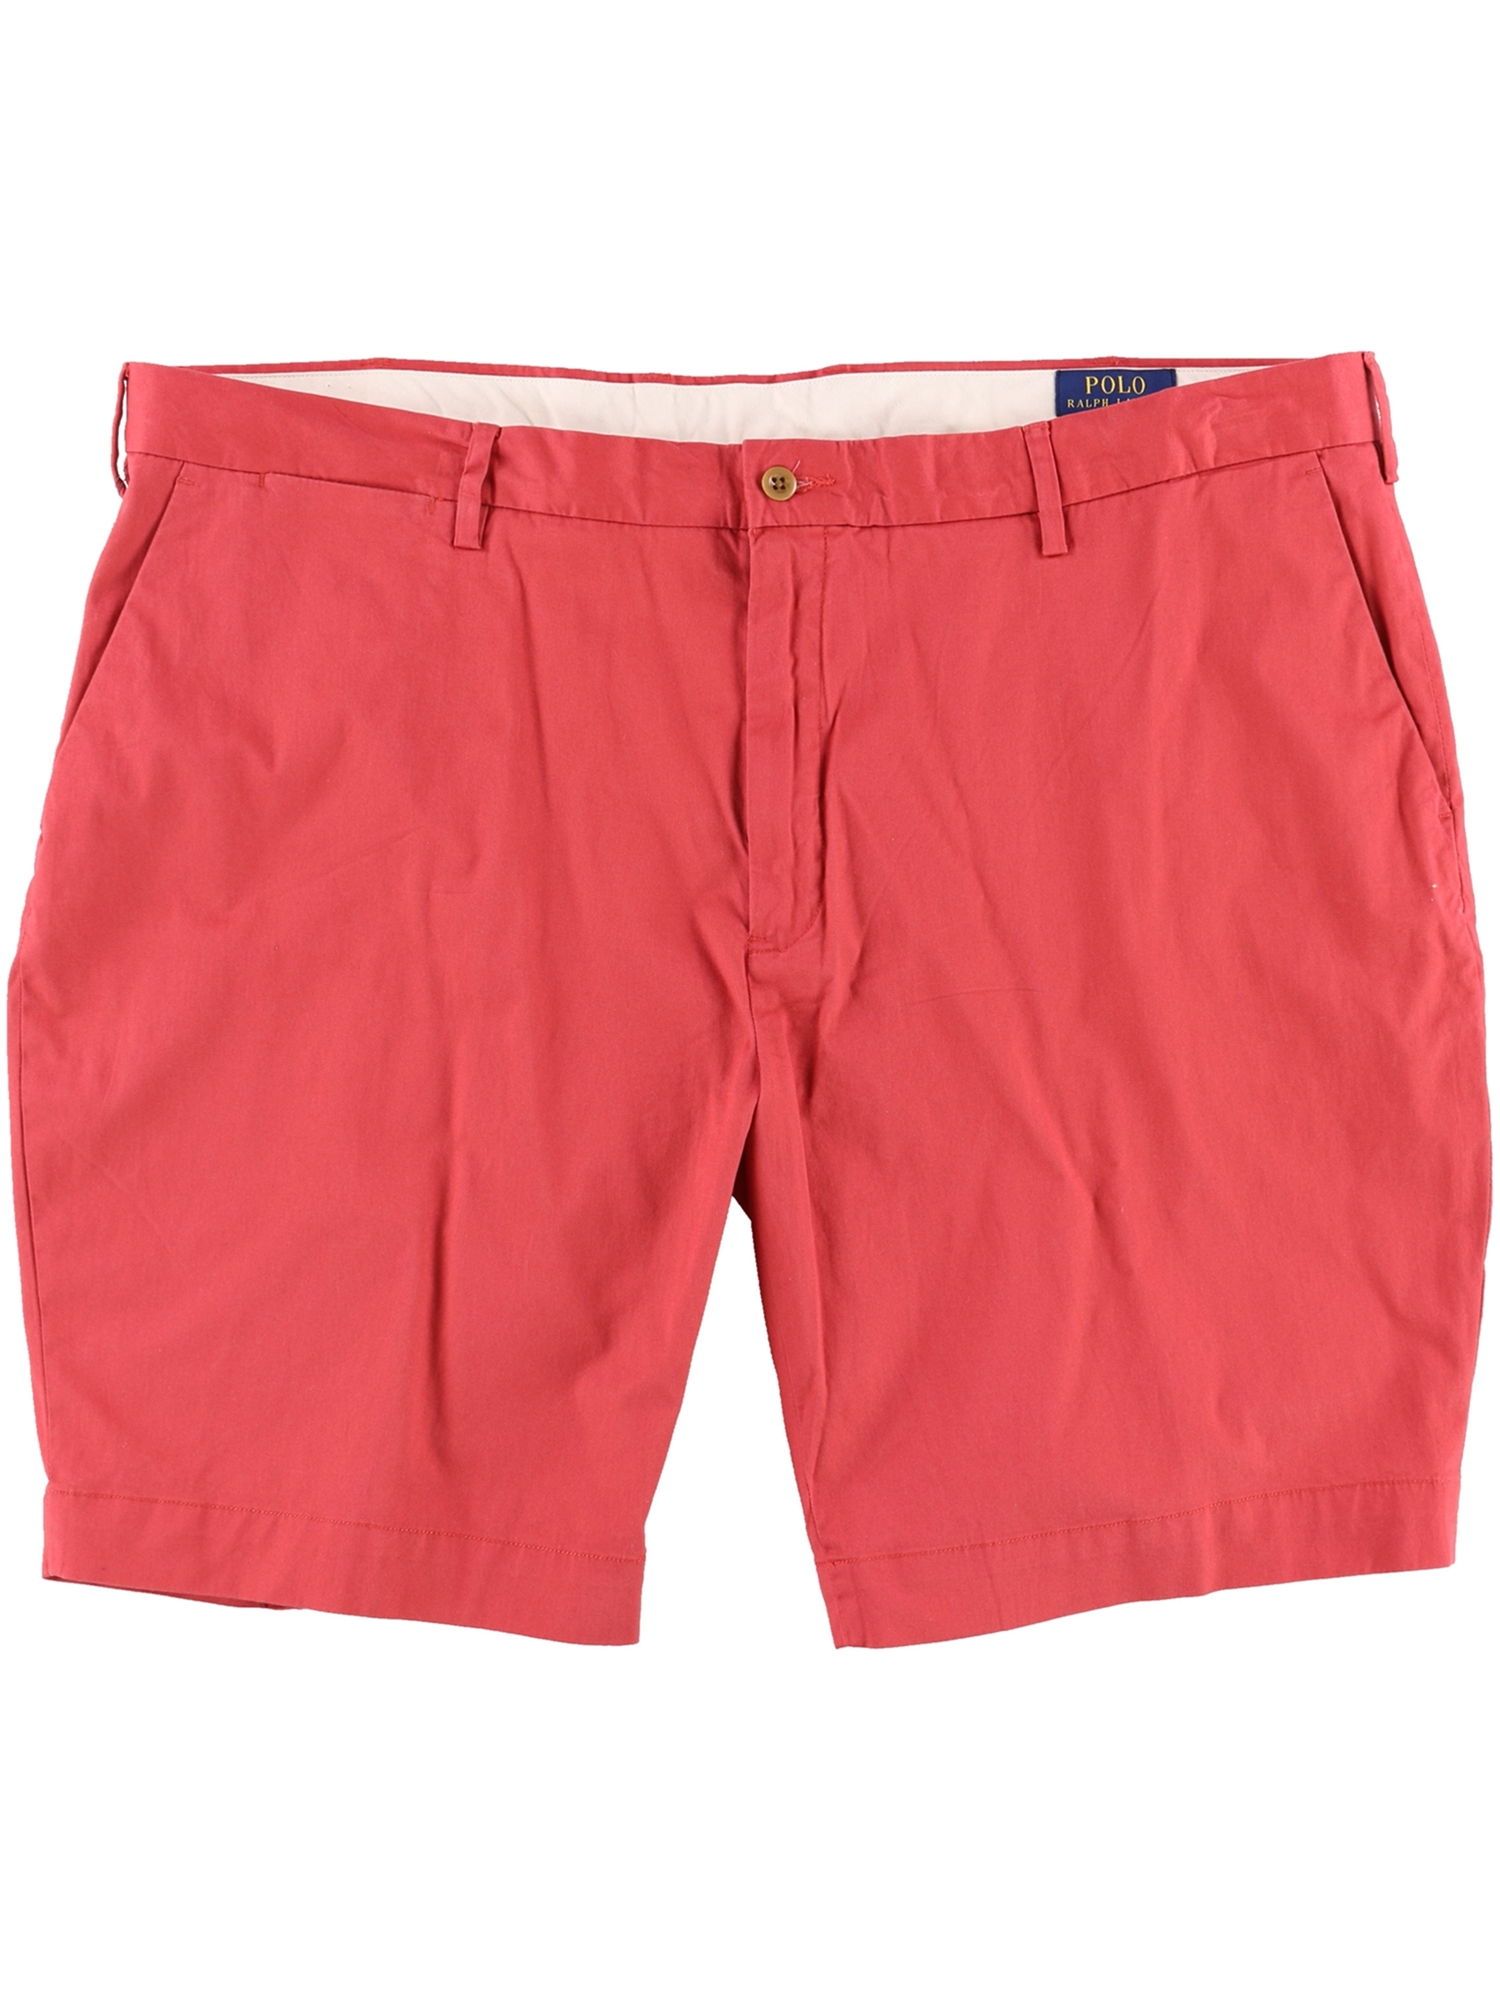 36 Casual Red Mens Stretch Chino Solid Shorts Lauren Ralph xWEQeorBdC